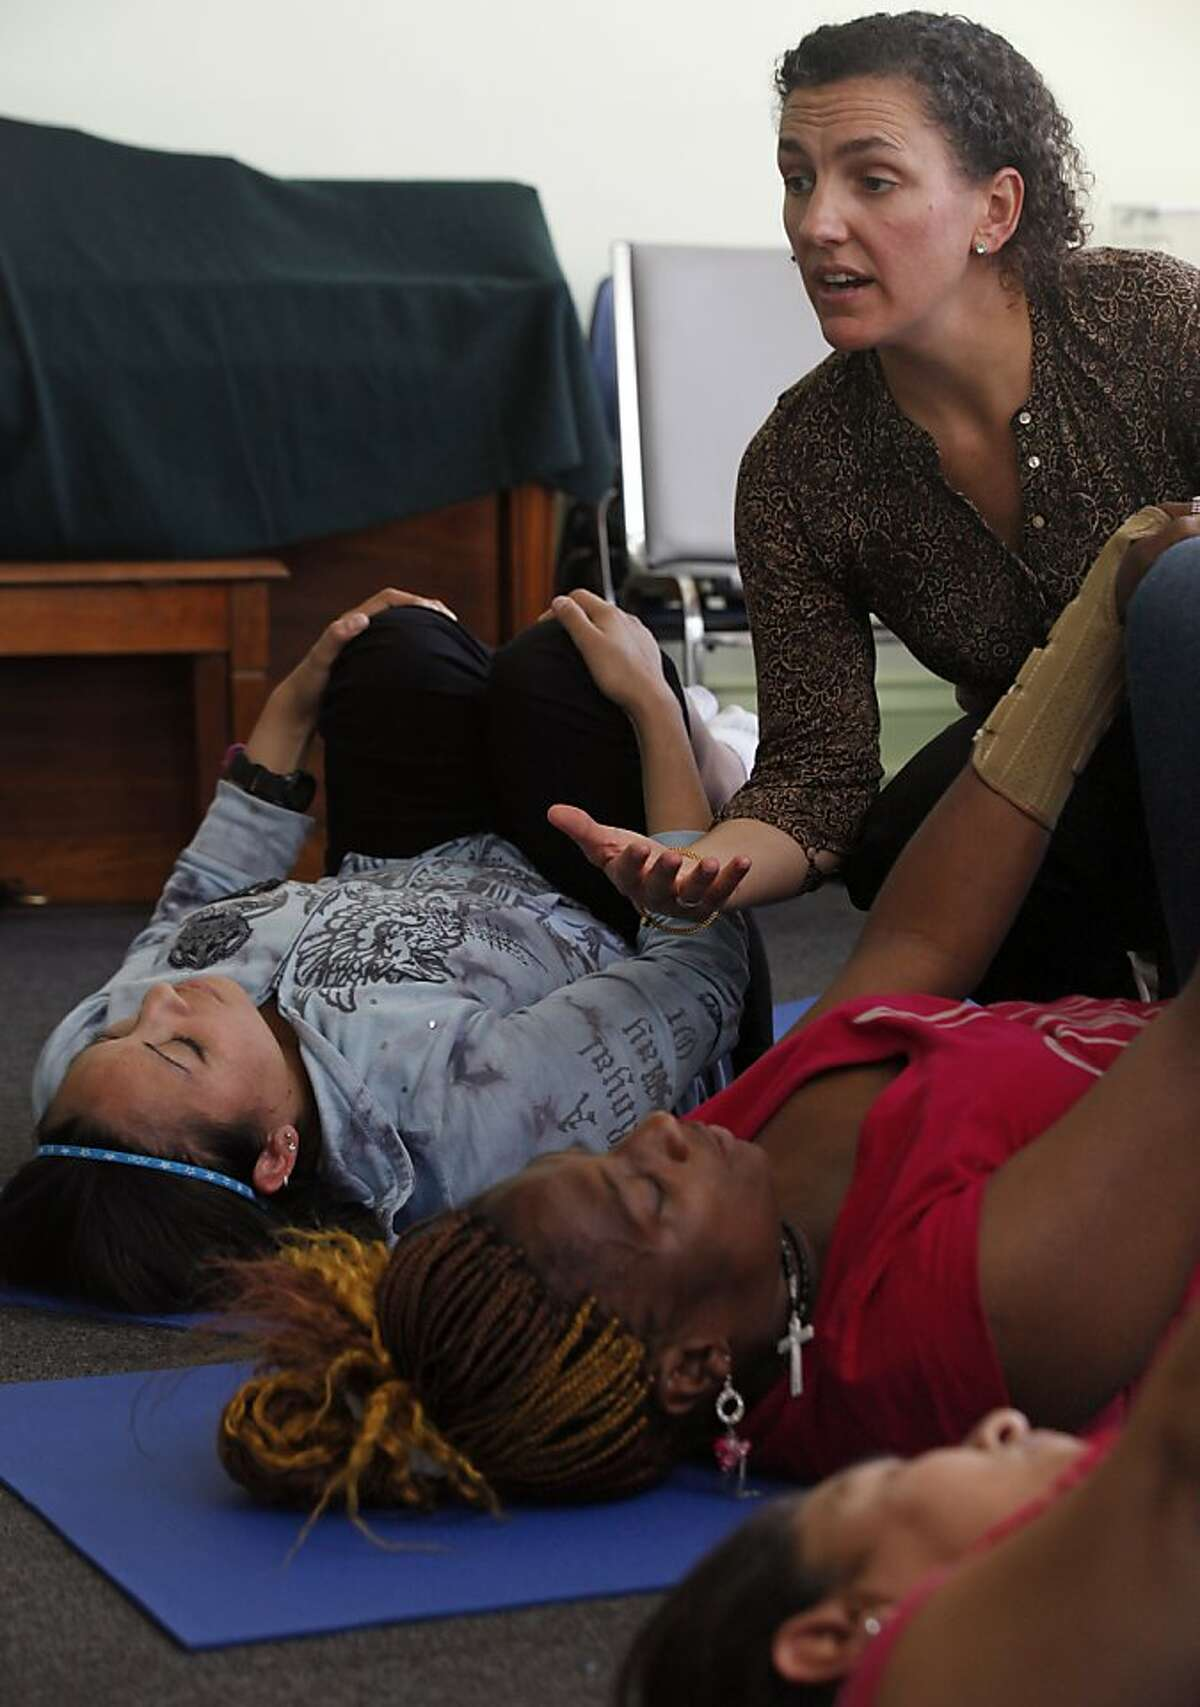 Kate Holcombe, founder of the Healing Yoga Foundation leads a class for Compass Family Services with a group of homeless mothers Wednesday September 21, 2011 in San Francisco.